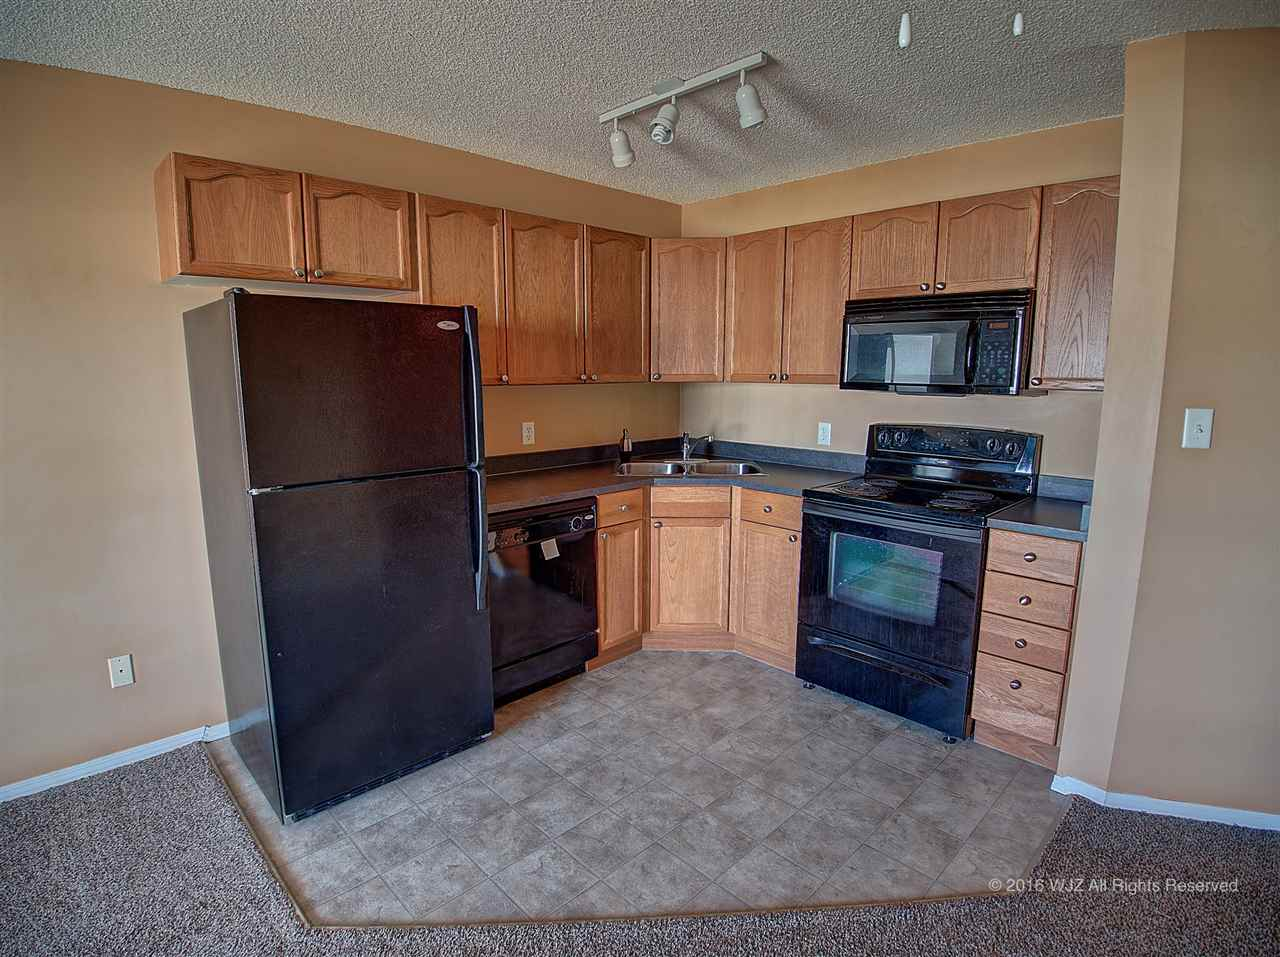 Photo 12: 423 70 woodsmere Close: Fort Saskatchewan Condo for sale : MLS(r) # E4031999